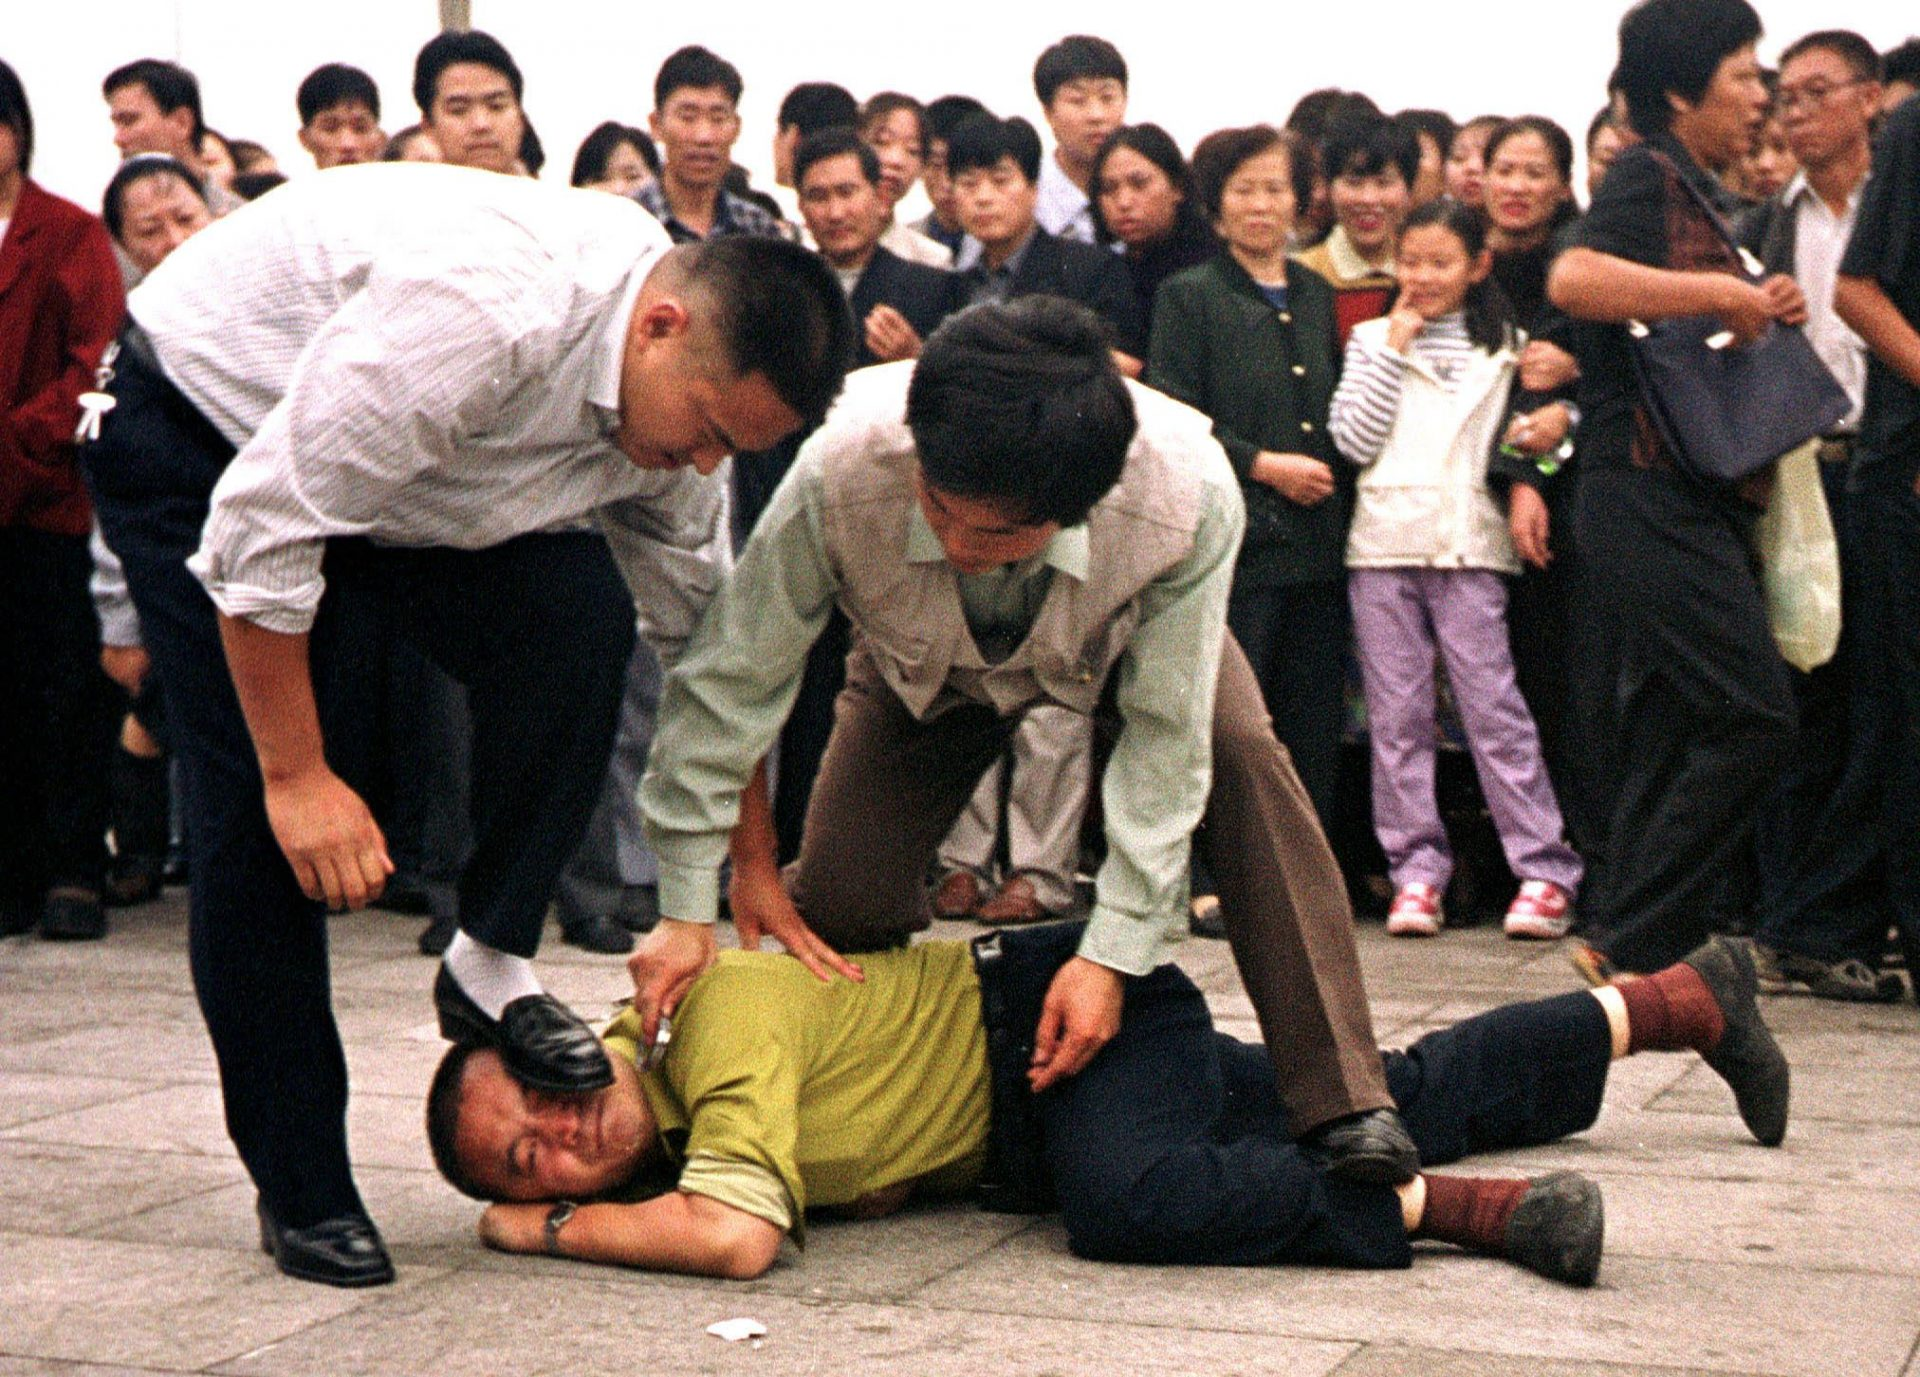 hundreds of thousands of Falun Gong practitioners have been subject to brutal torture at the hands of the Chinese Communist Party agencies, including police and special forces. (Image: Minghui.org)